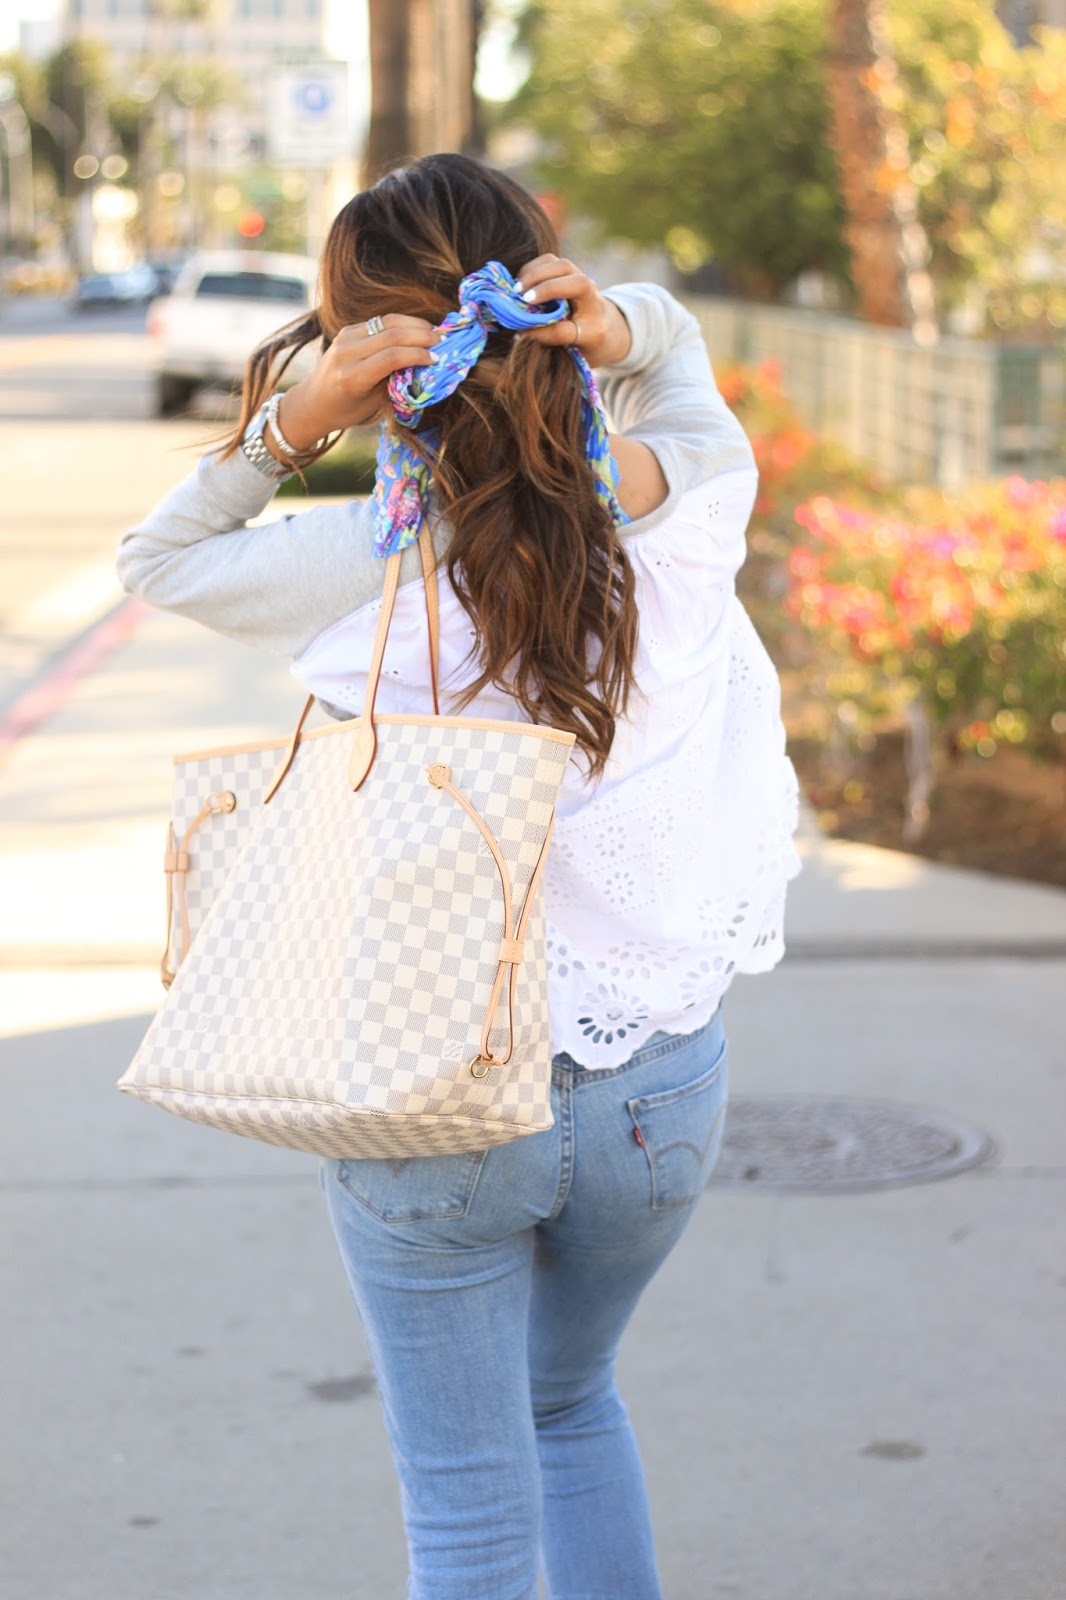 Louis Vuitton Neverfull GM and Eyelet back Sweatshirt with floral hair scarf